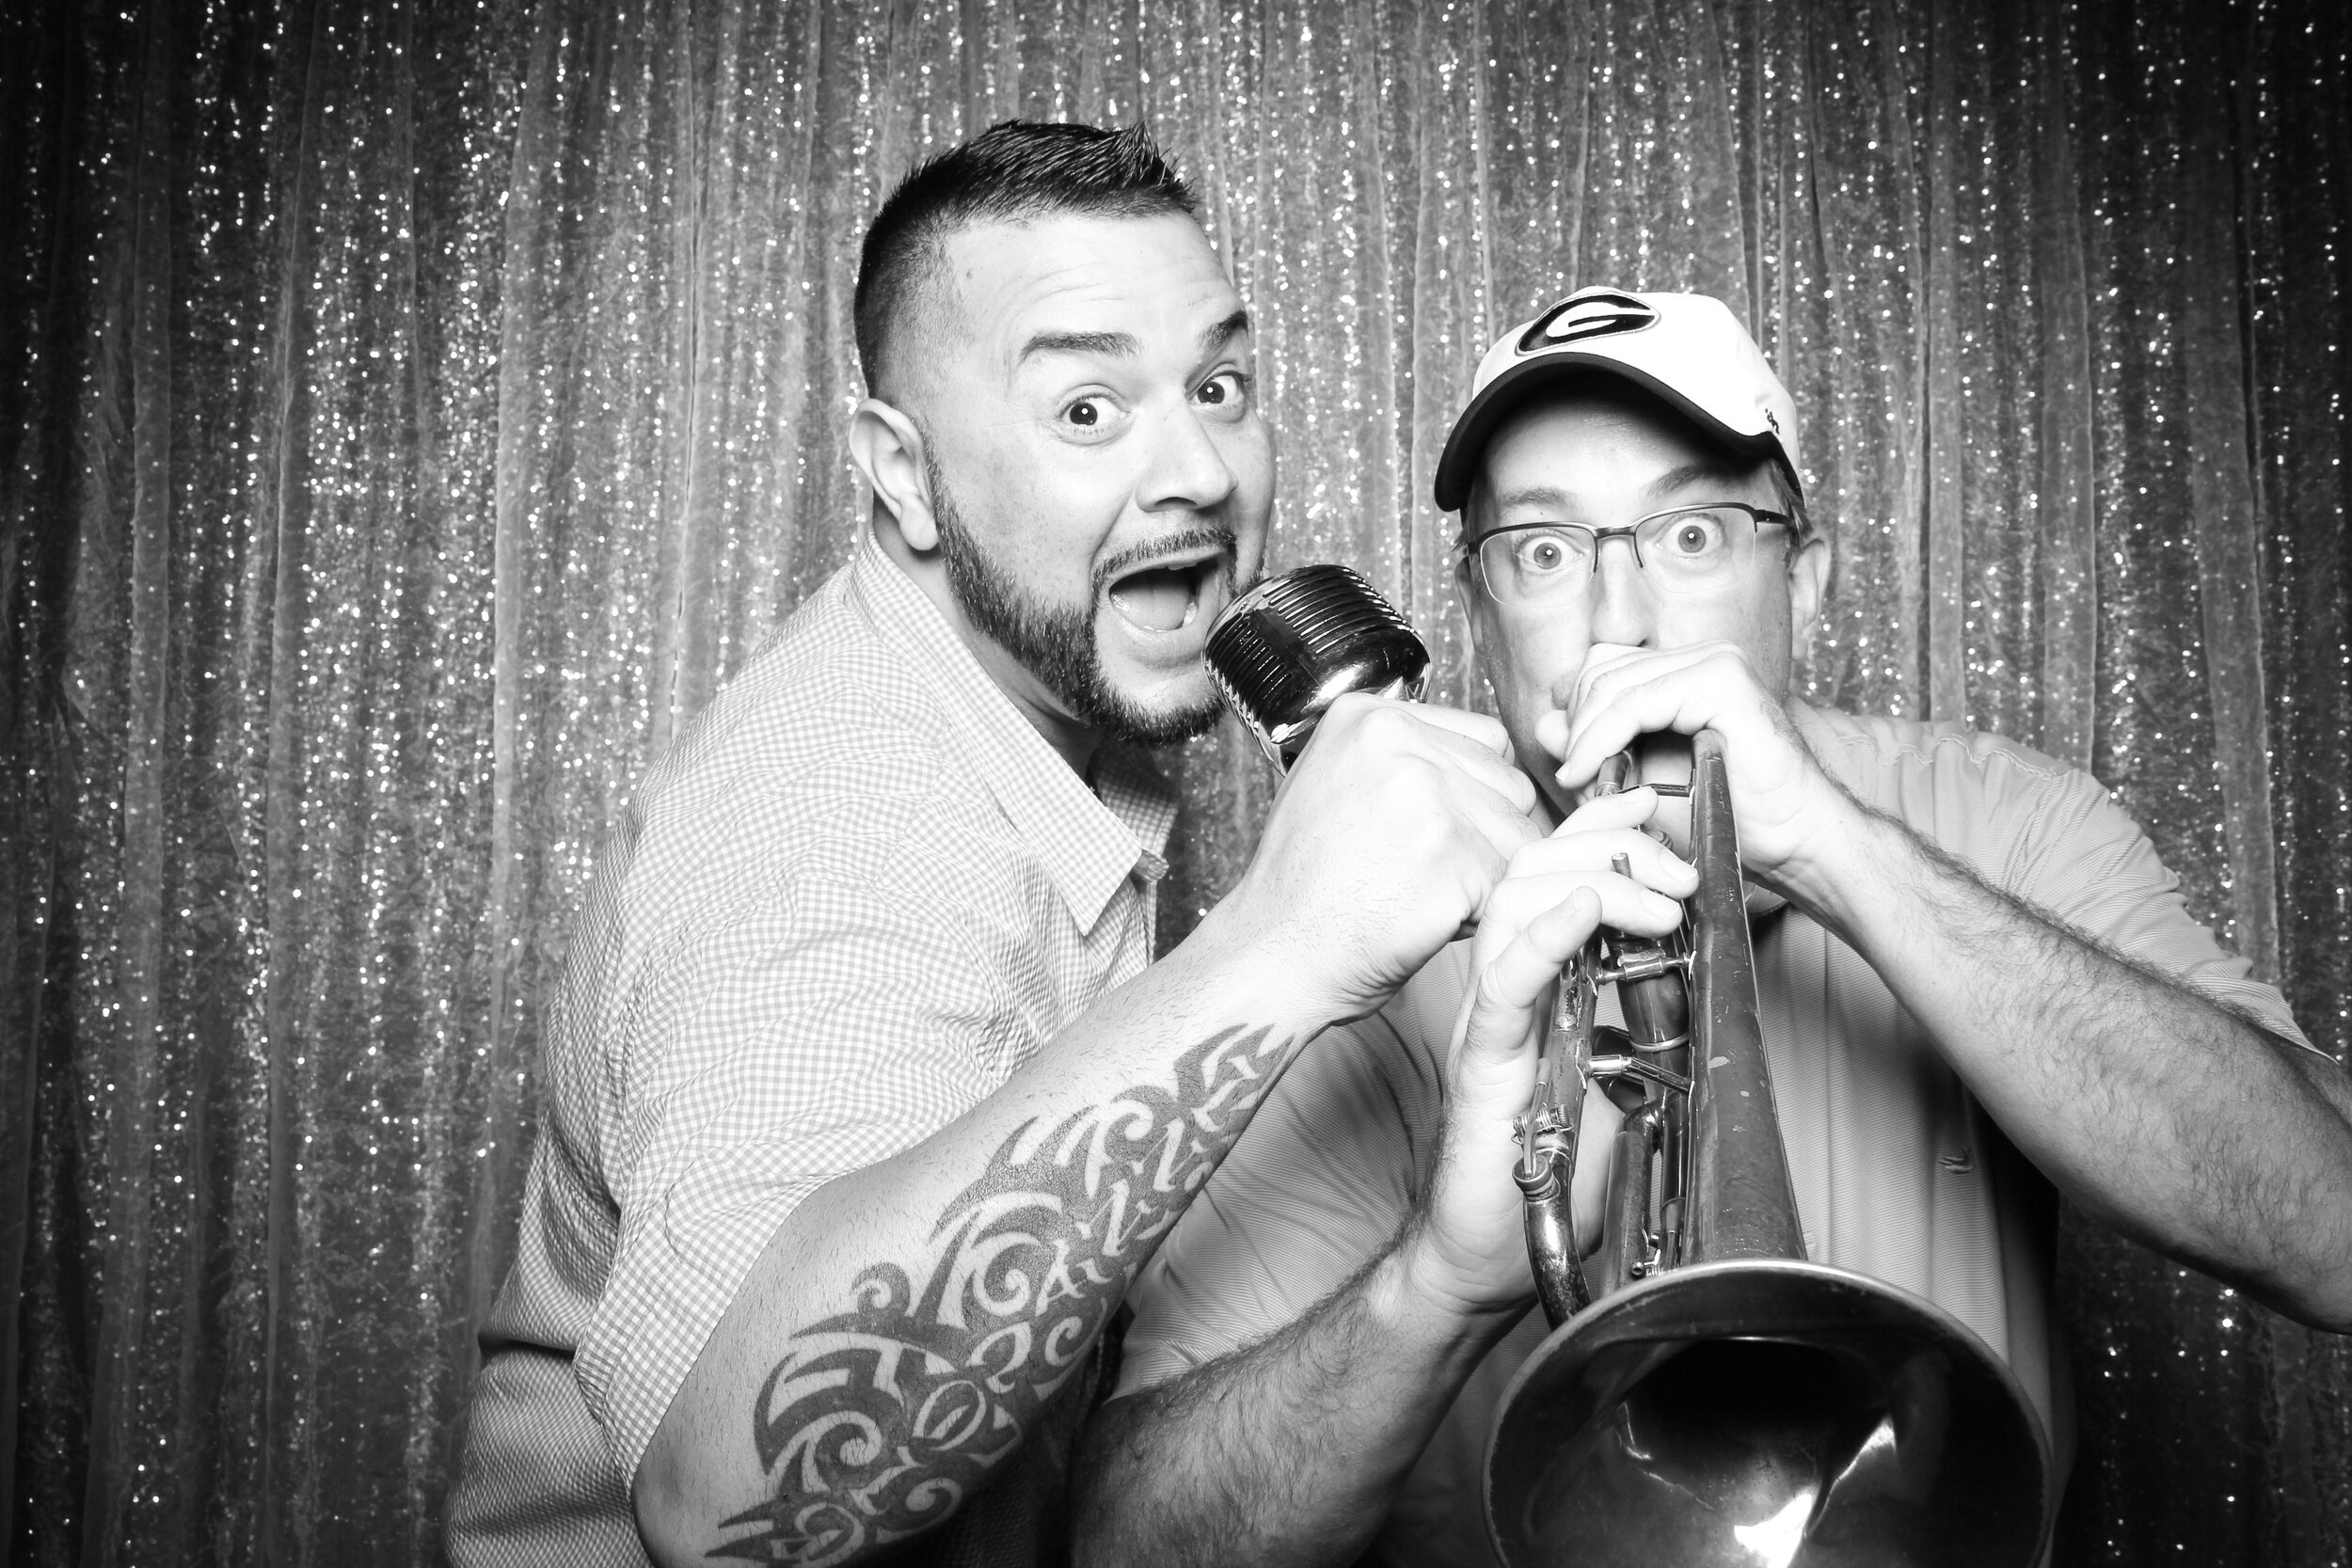 Chicago_Vintage_Wedding_Photobooth_House_of_Blues_08.jpg